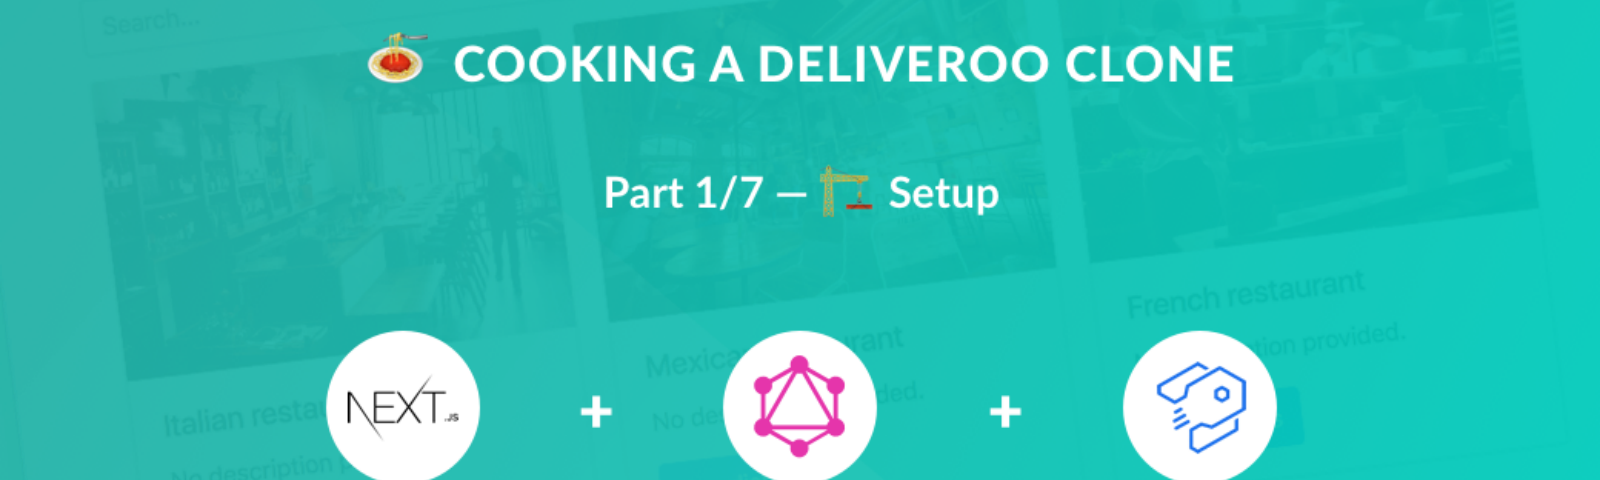 🍝 Cooking a Deliveroo clone with Next js and Strapi - Setup (part 1/7)